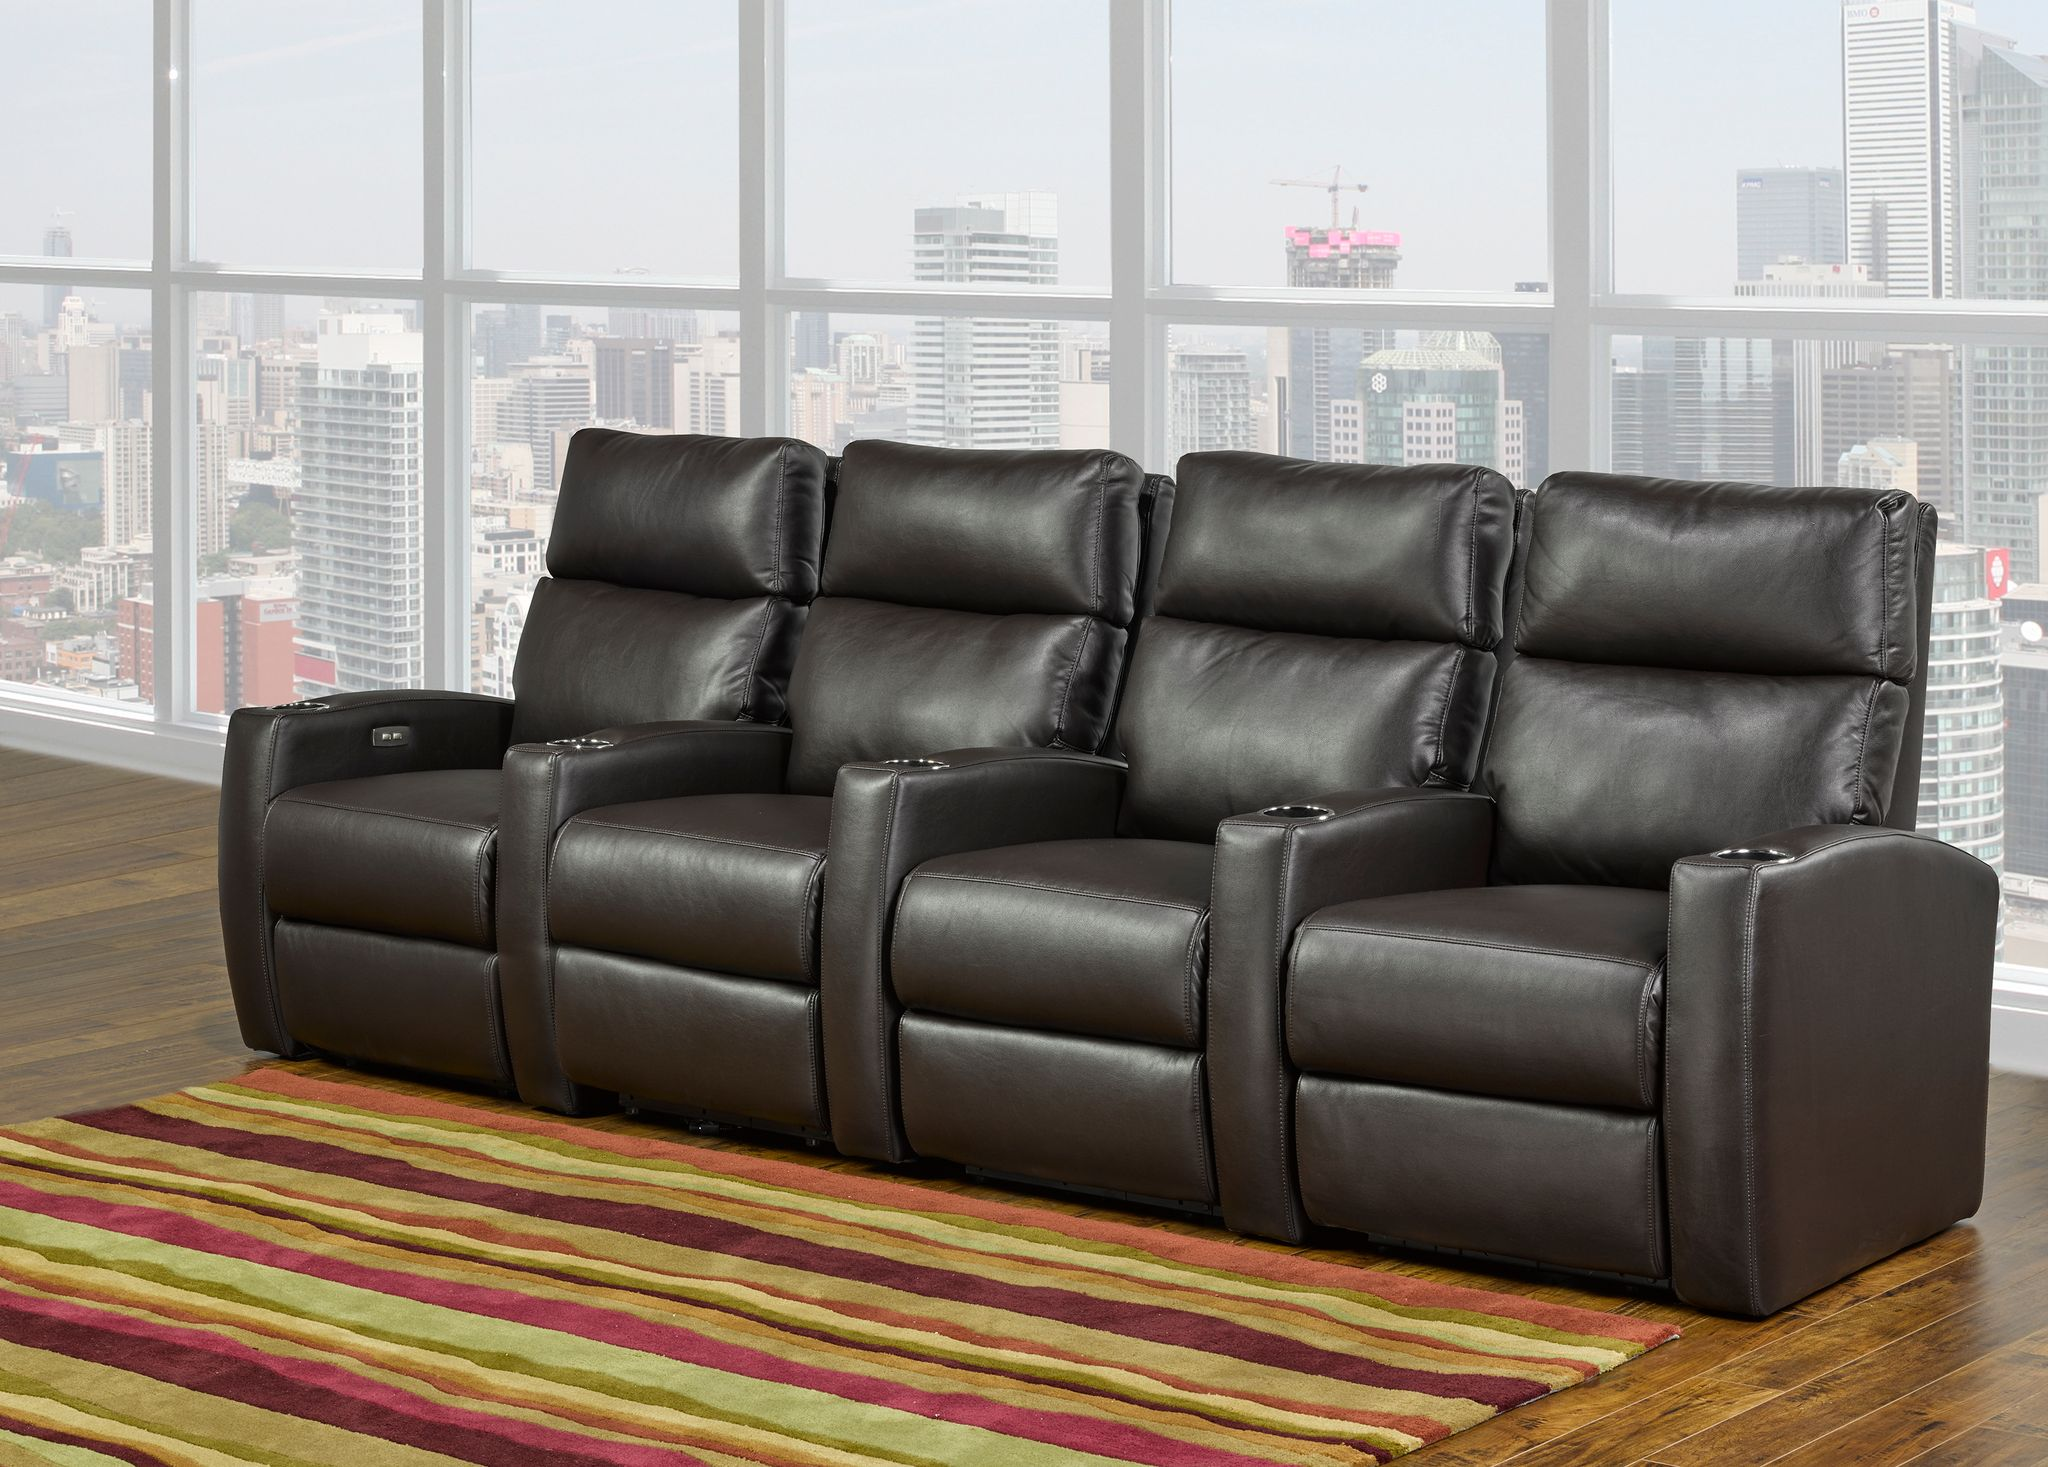 4-SEATER HOME THEATER